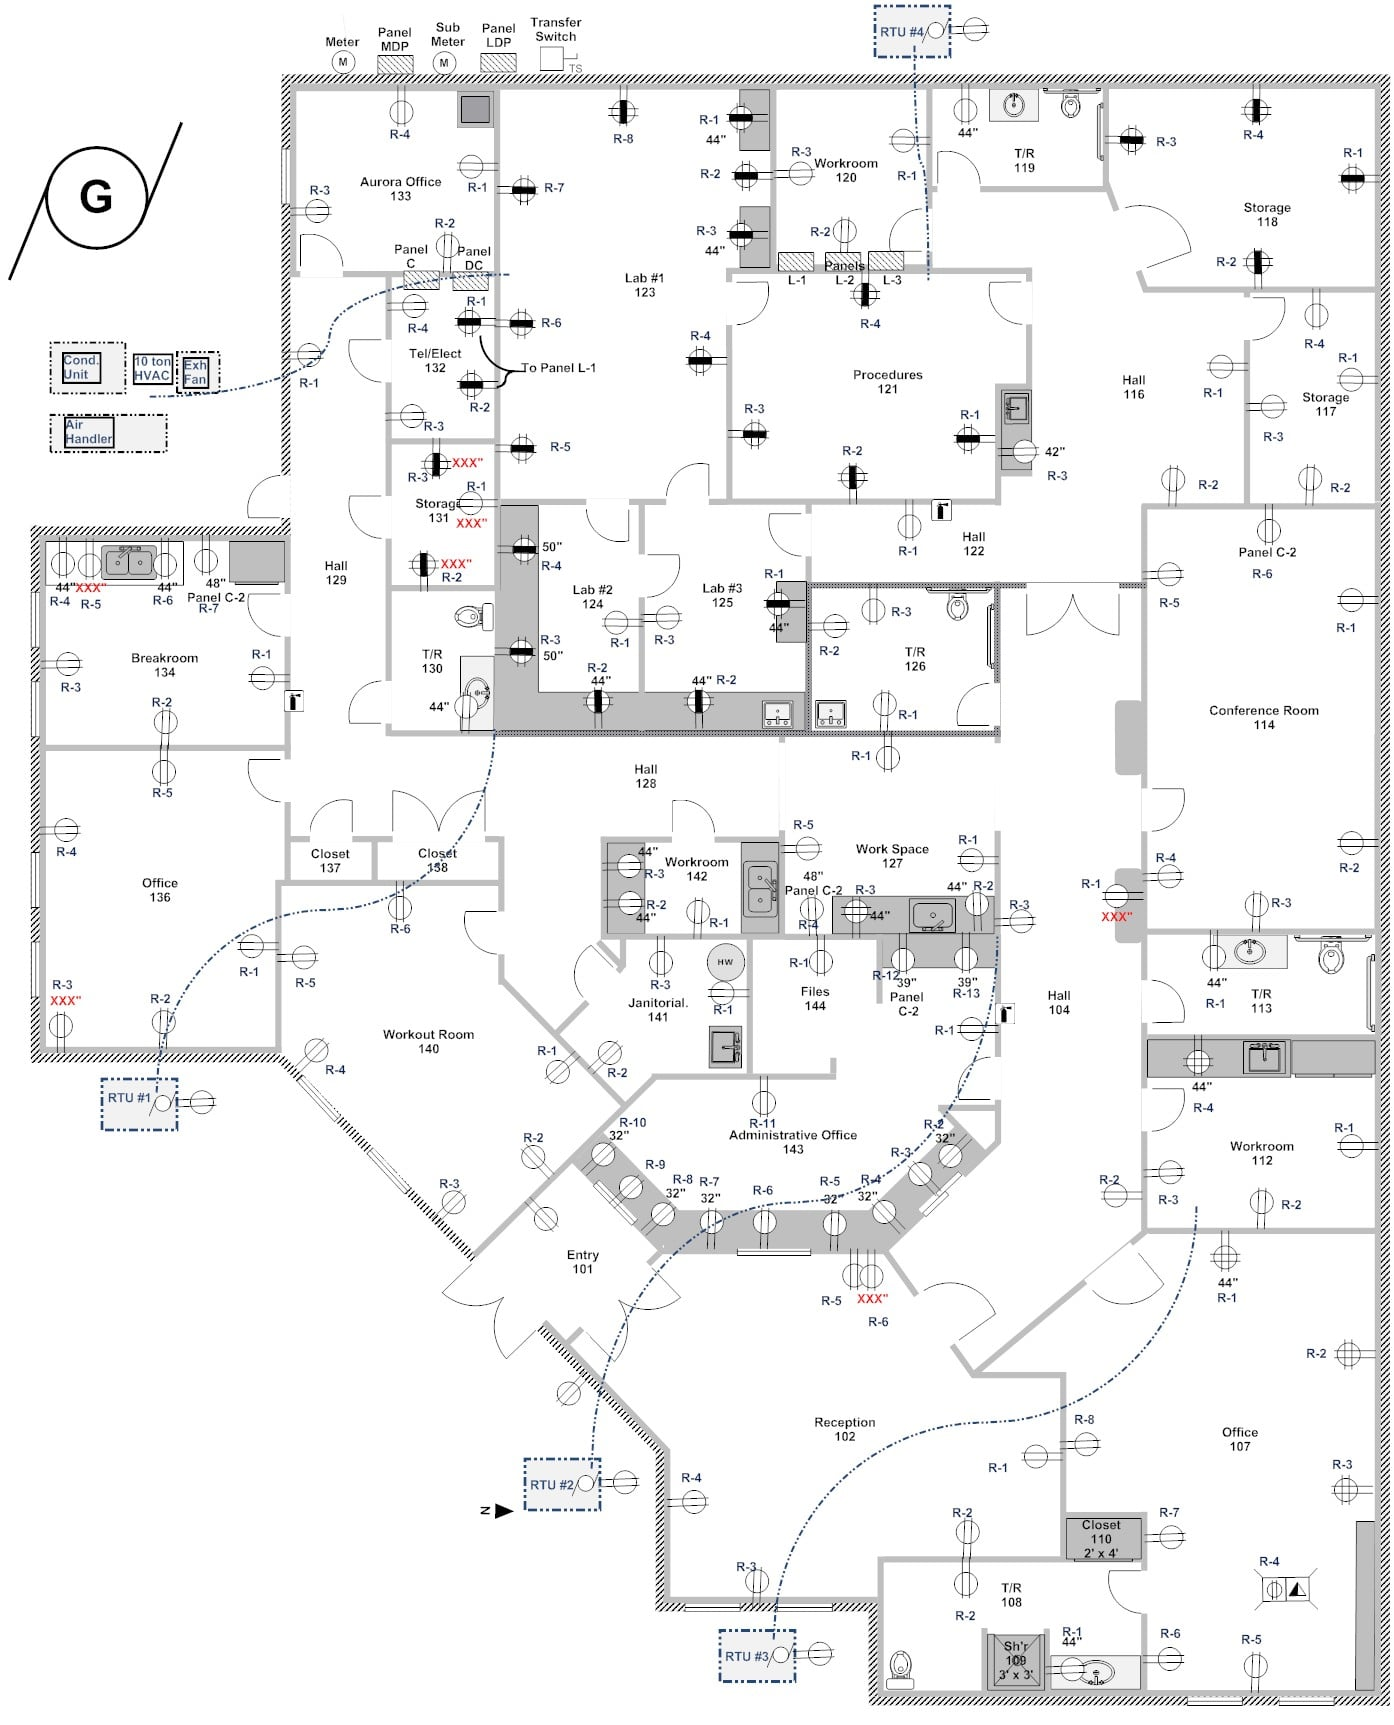 Electrical Lay Out Plan - otoring.com